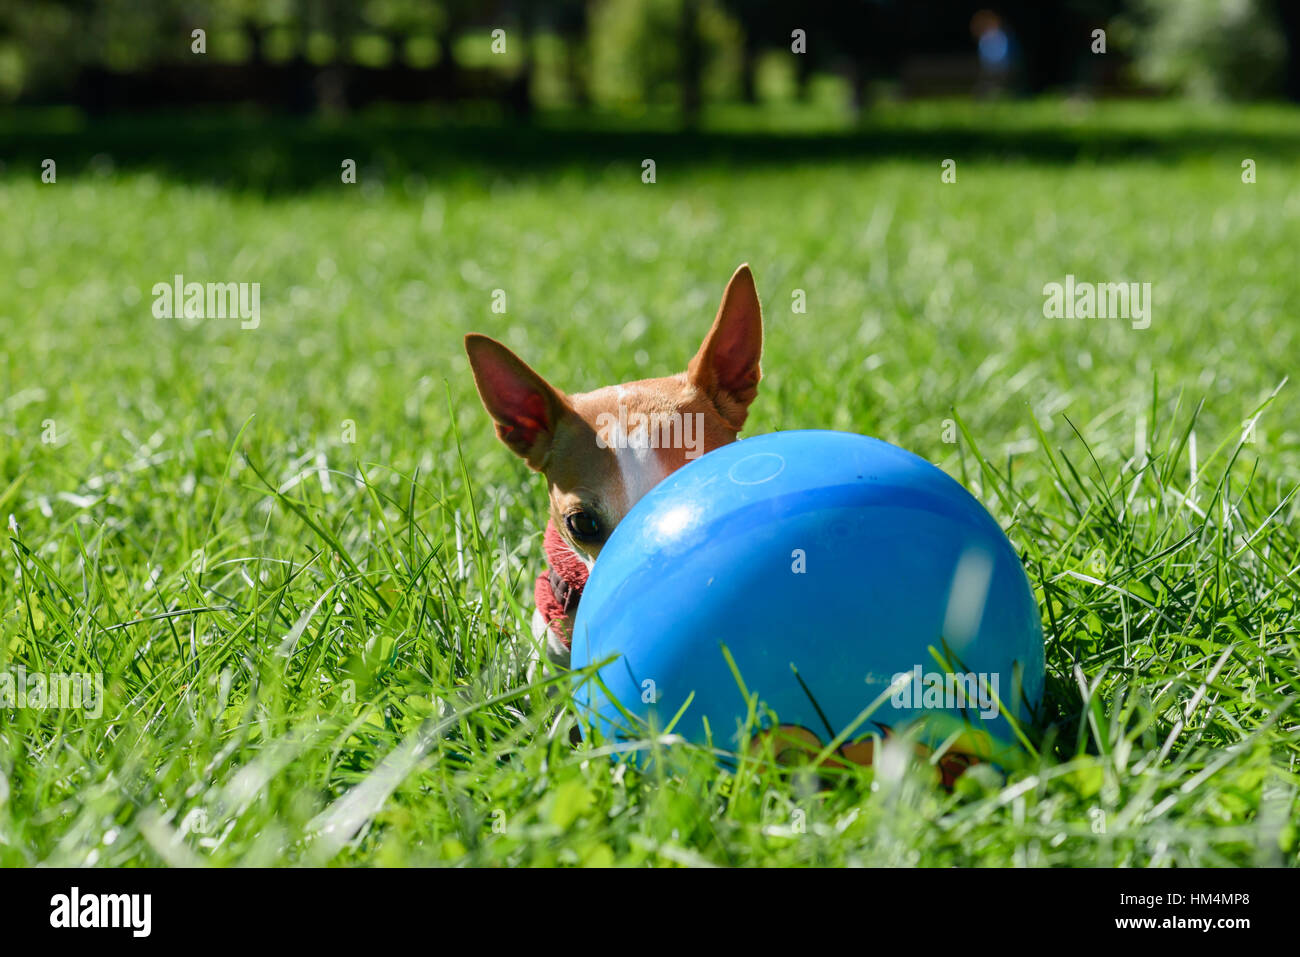 Small dog with big ears hiding behind blue ball - Stock Image